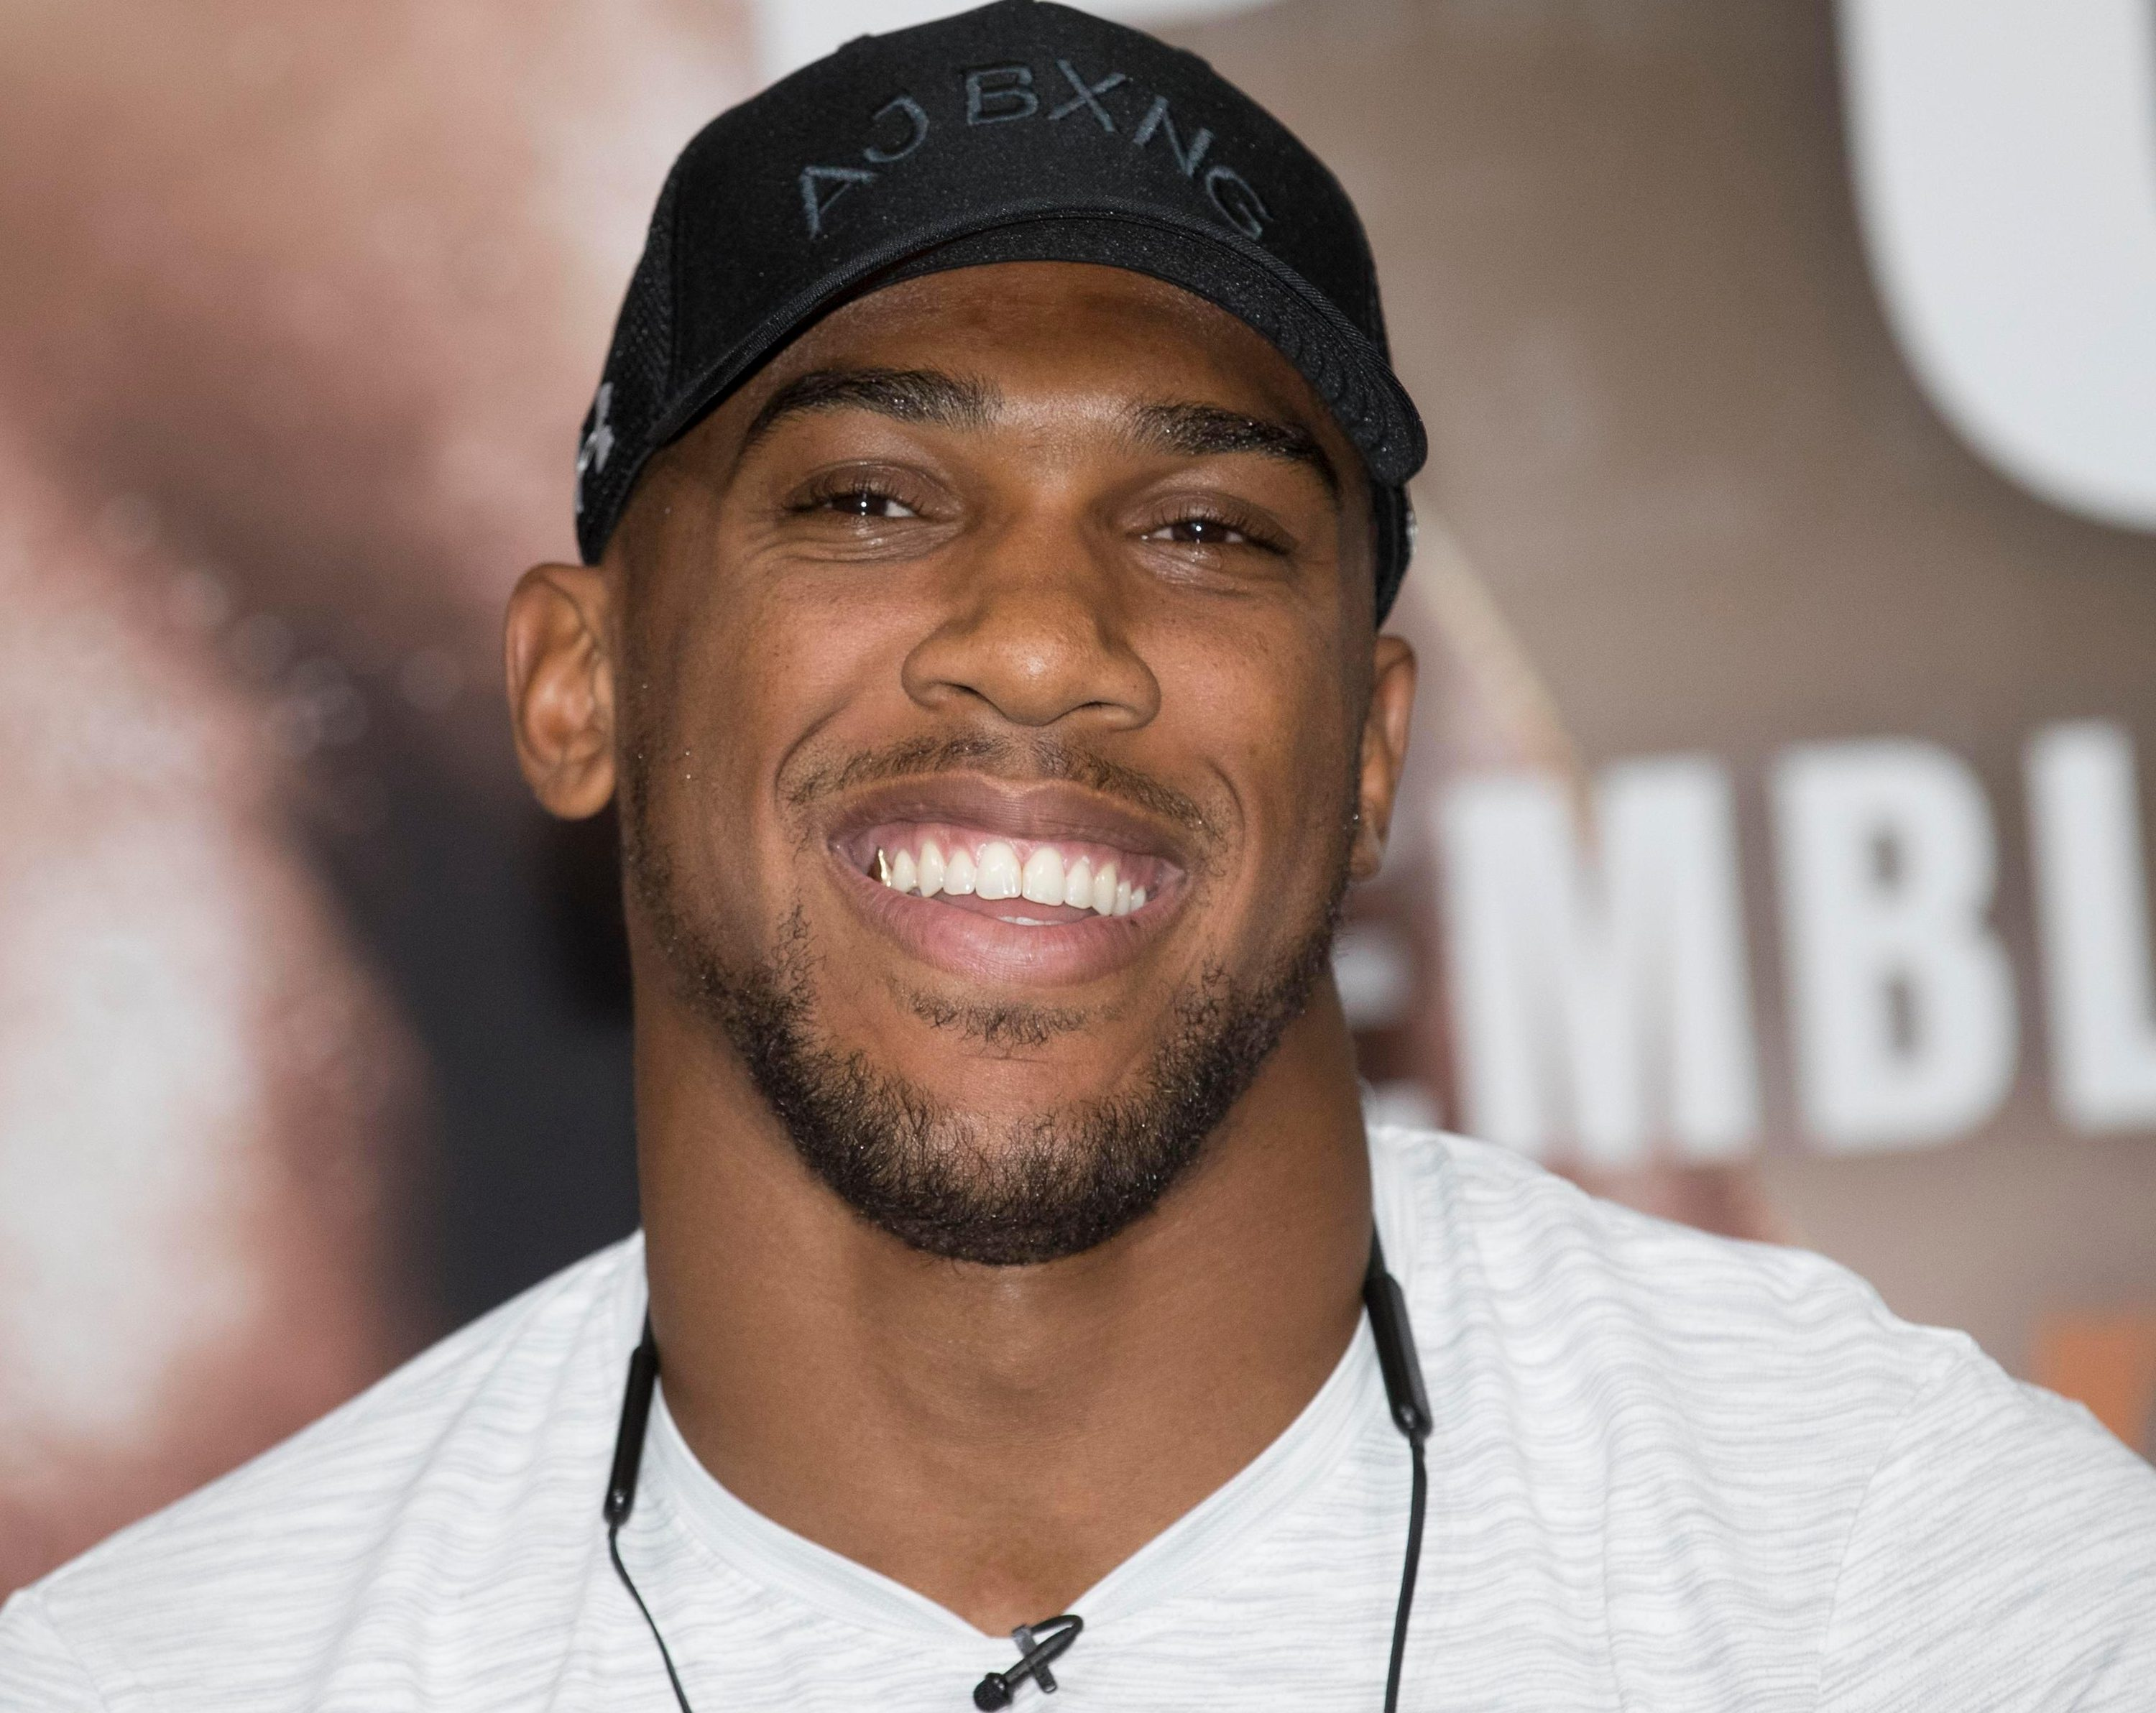 Anthony Joshua is calm and relaxed despite the huge night he has planned on September 22